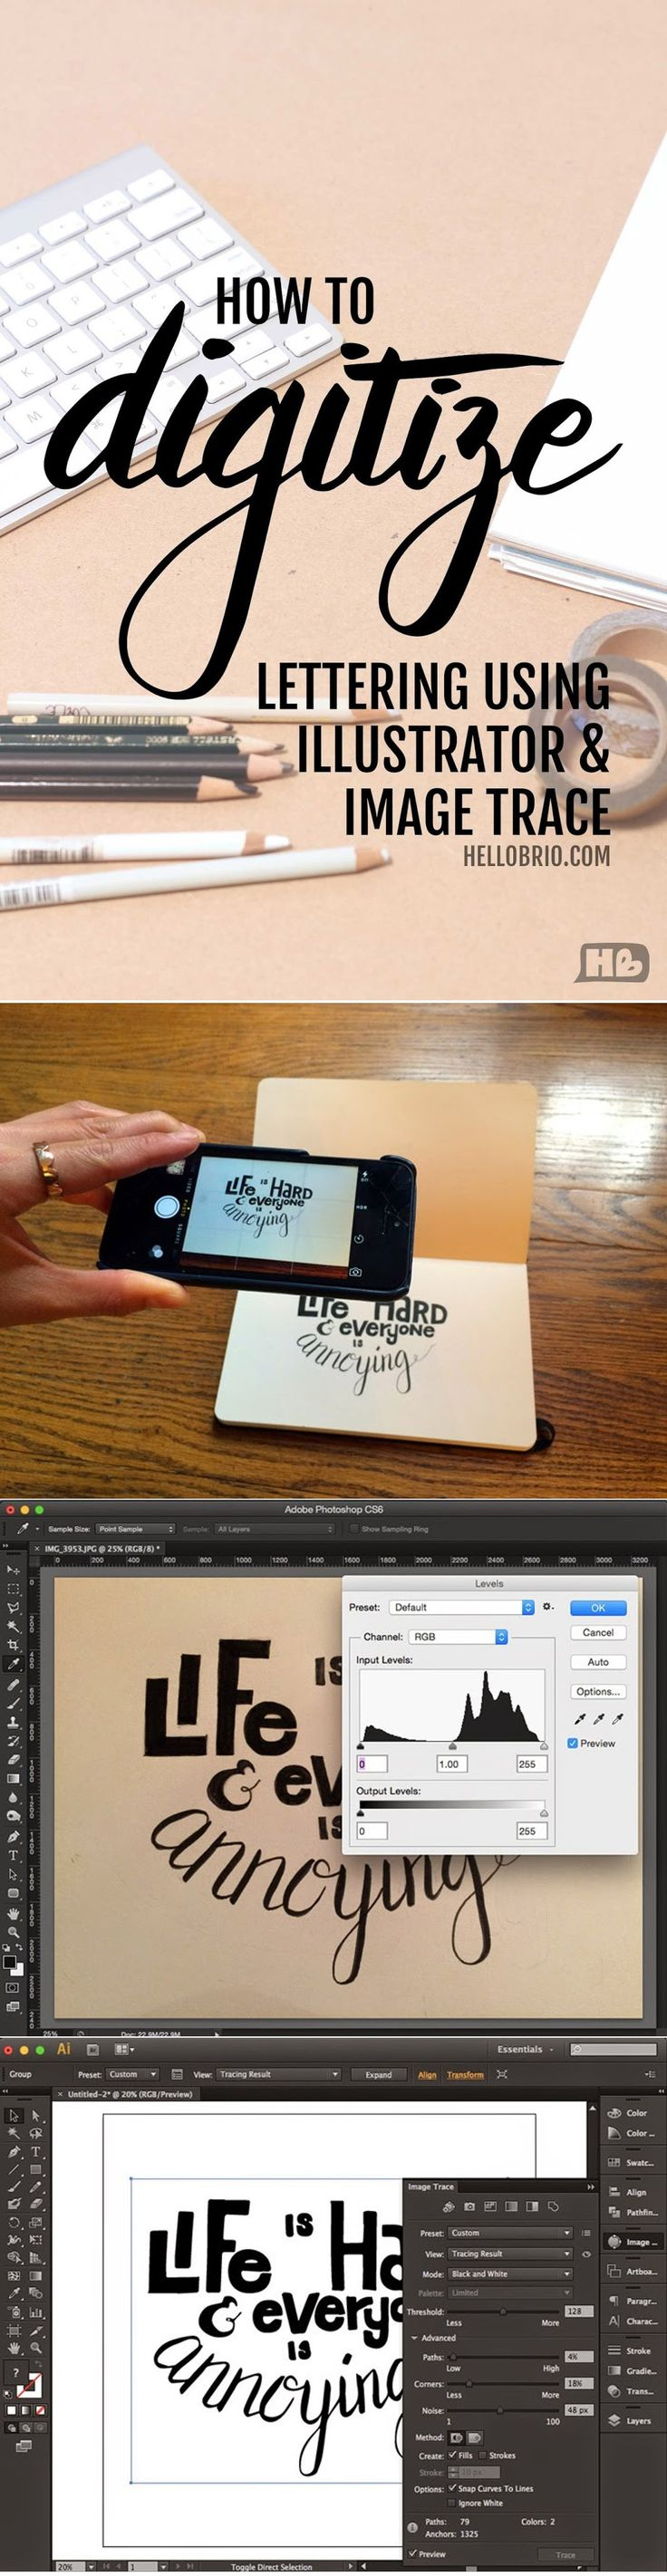 :::: ✿⊱╮☼ ☾ PINTEREST.COM christiancross ☀❤•♥•* :::: how to digitize your hand lettering using illustrator's image trace.